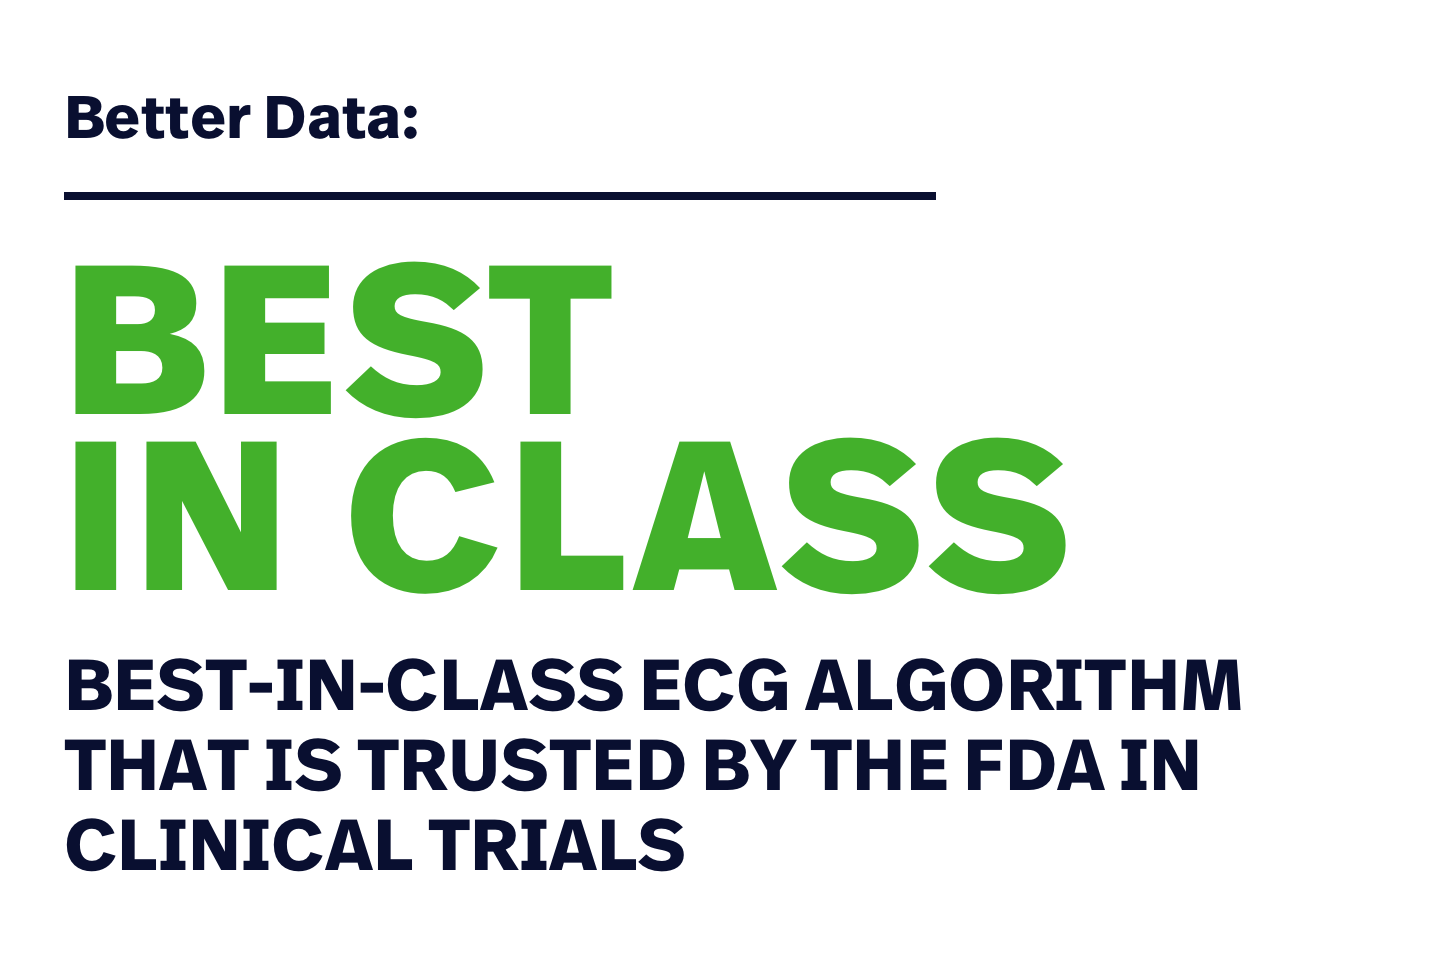 Better data: best in class ECG algorithm that is trusted by the FDA in clinical trials